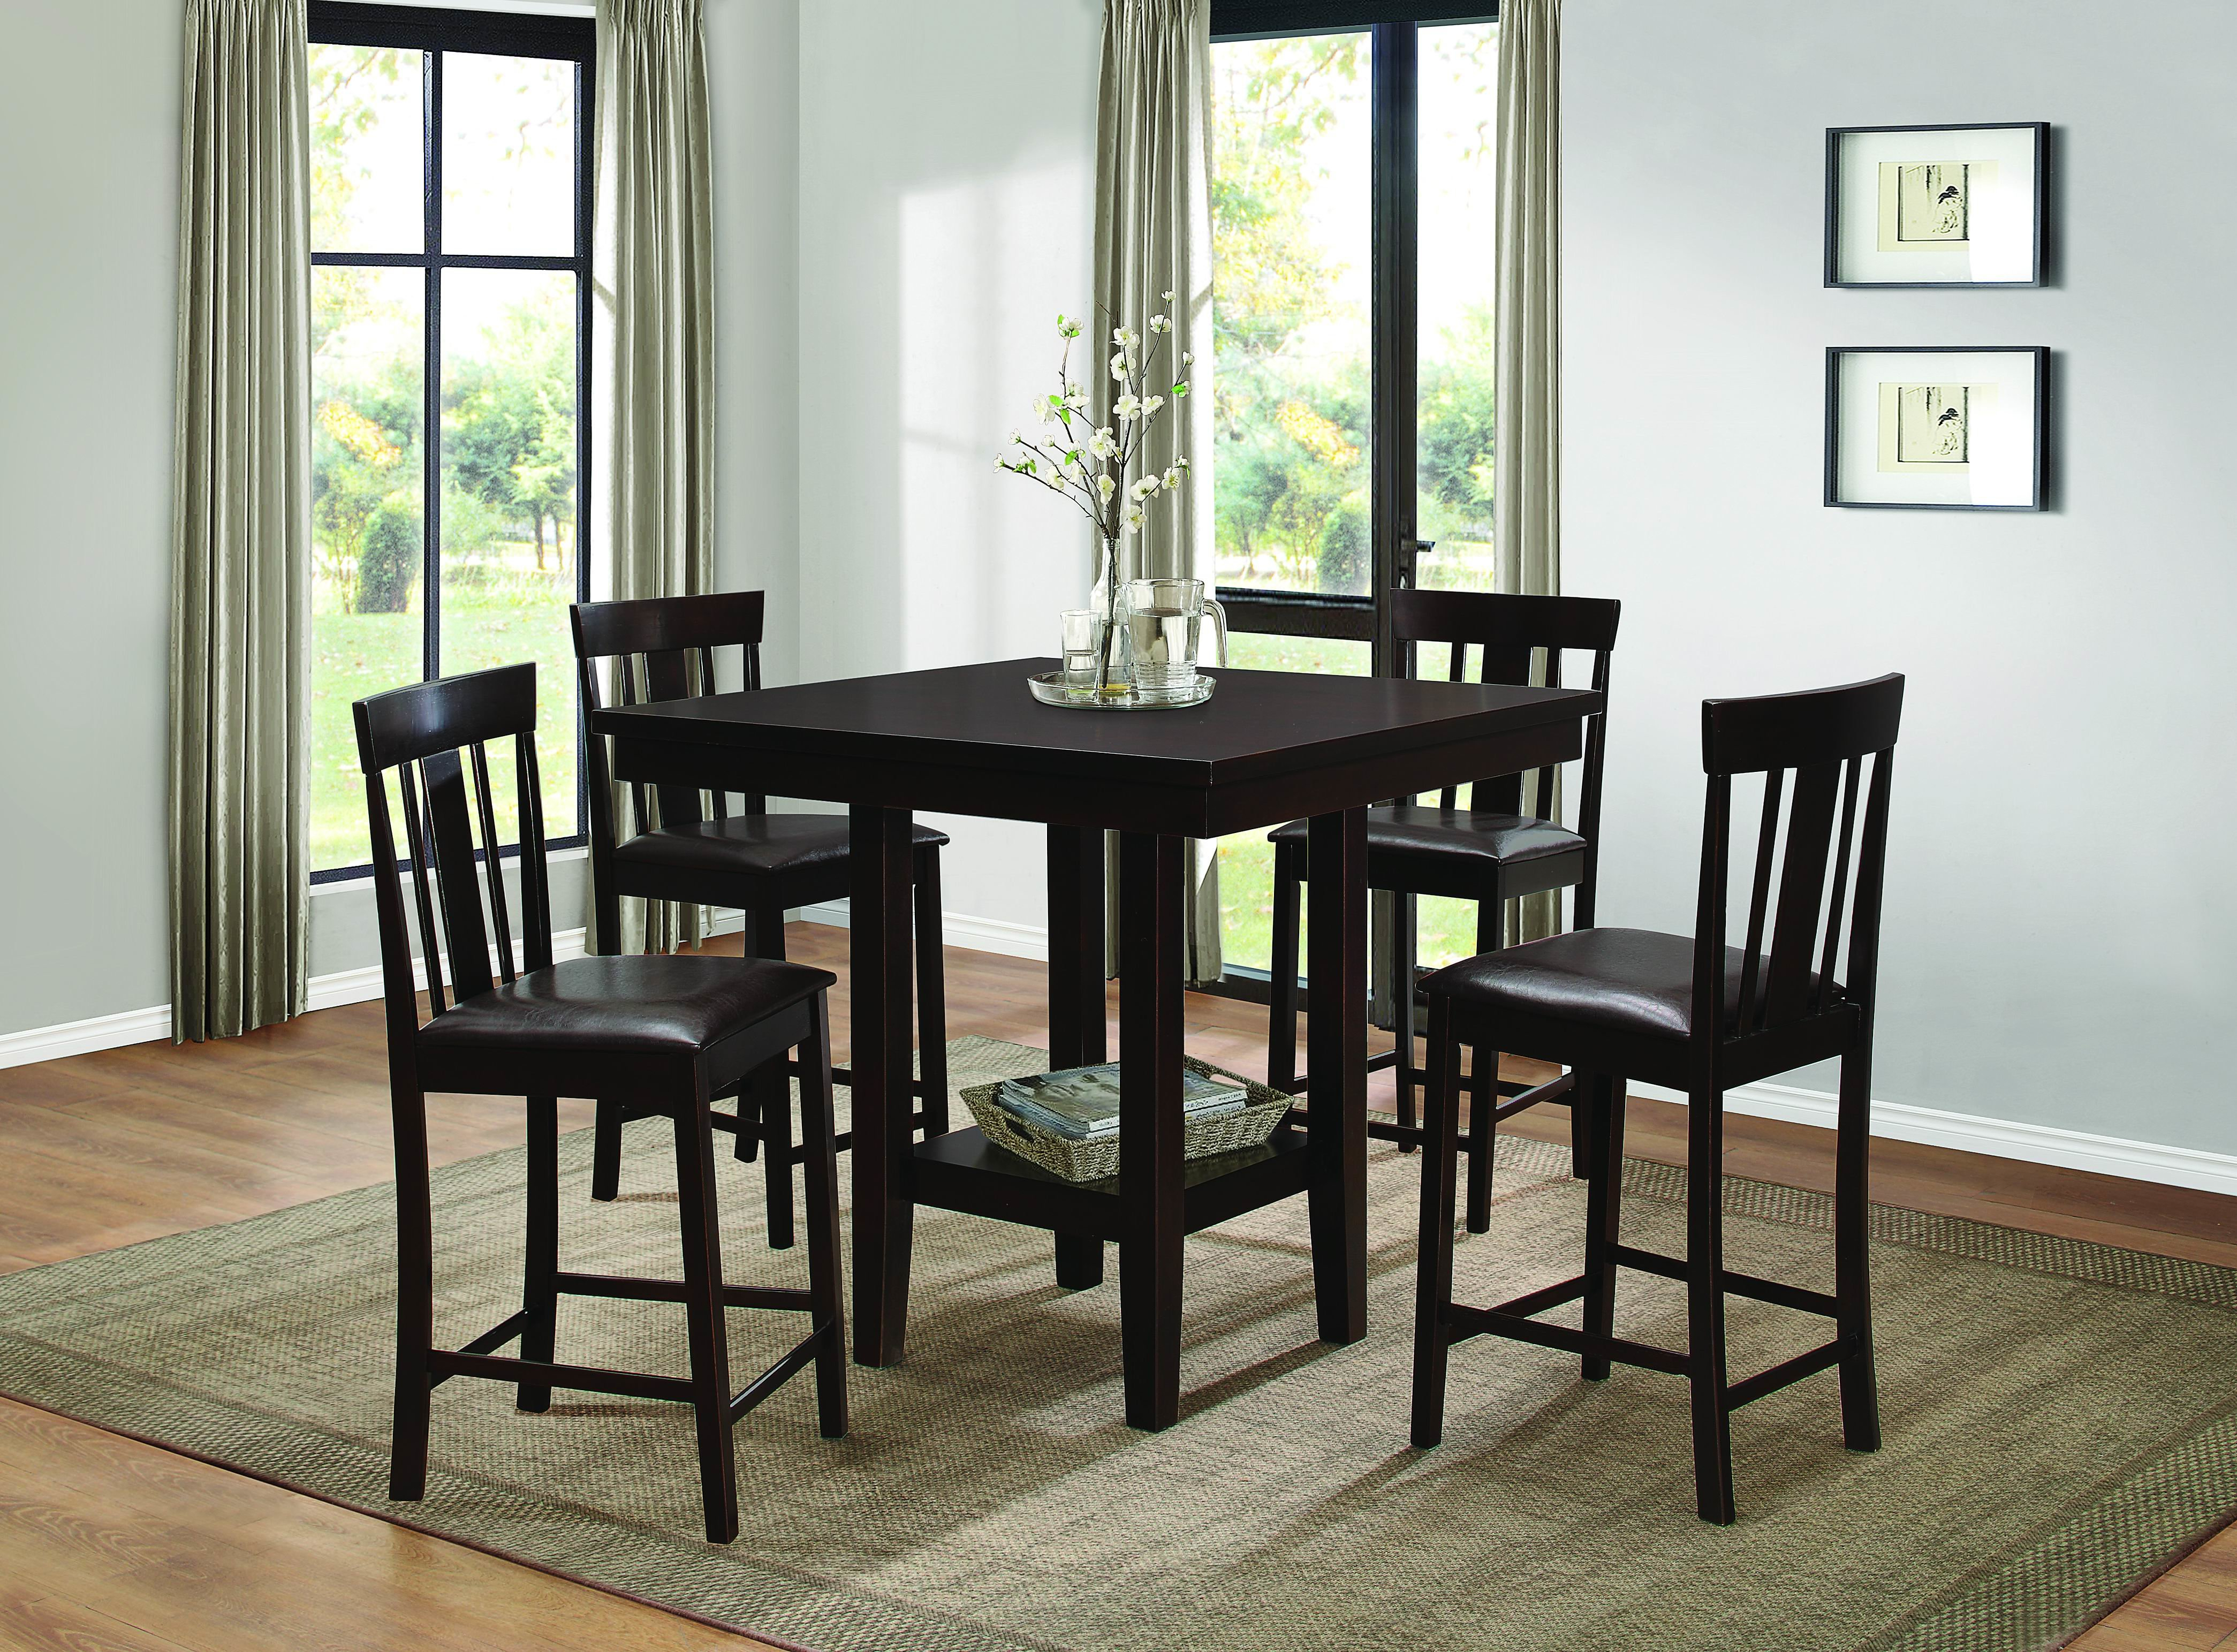 Diego 5 Piece Dining Set Inside Latest Kernville 3 Piece Counter Height Dining Sets (Image 8 of 20)